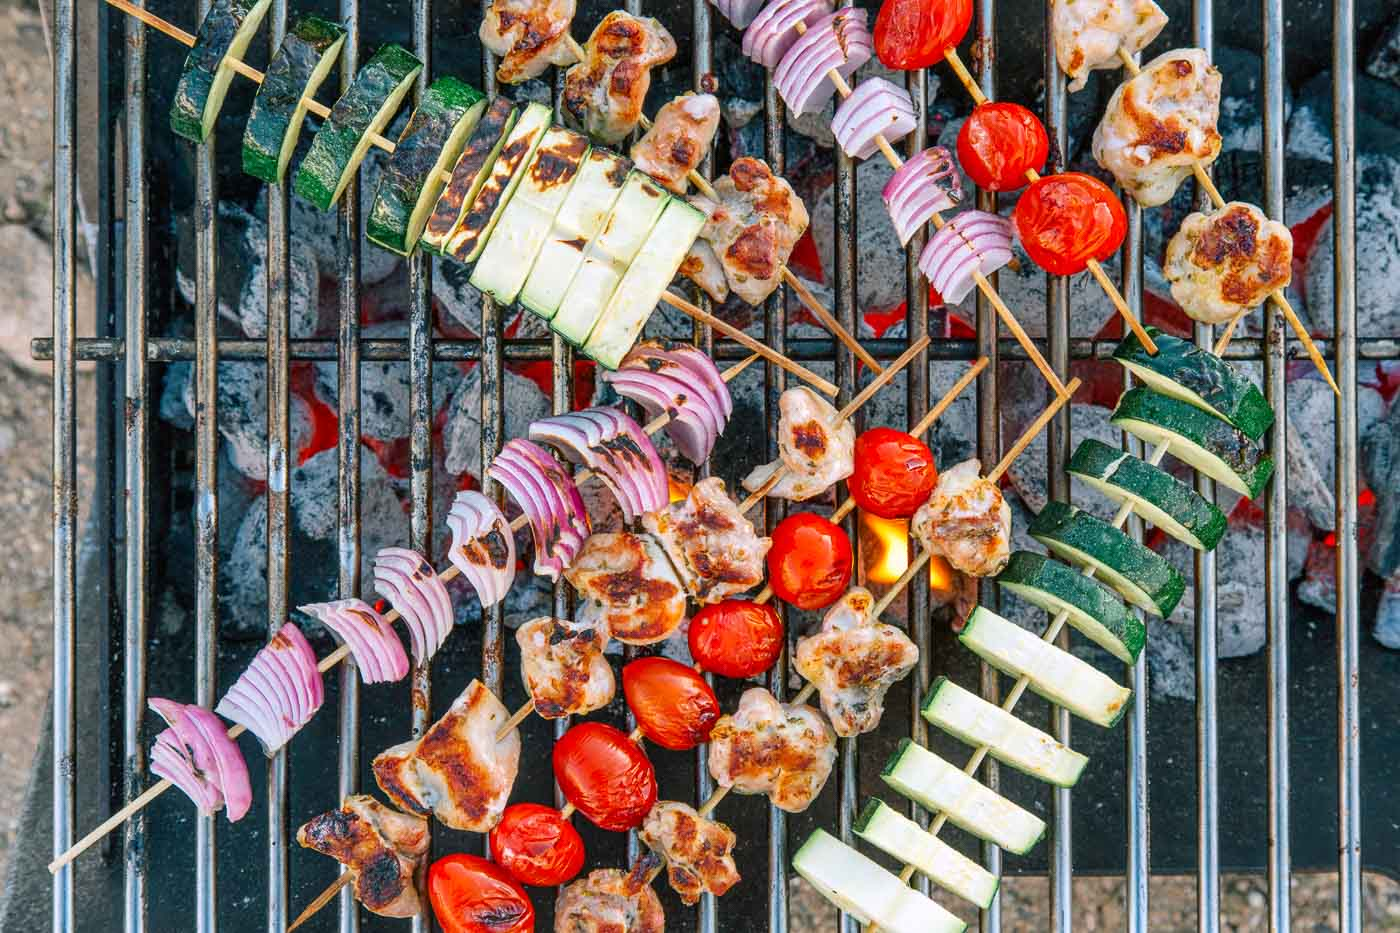 Skewered vegetables and chicken on a grill